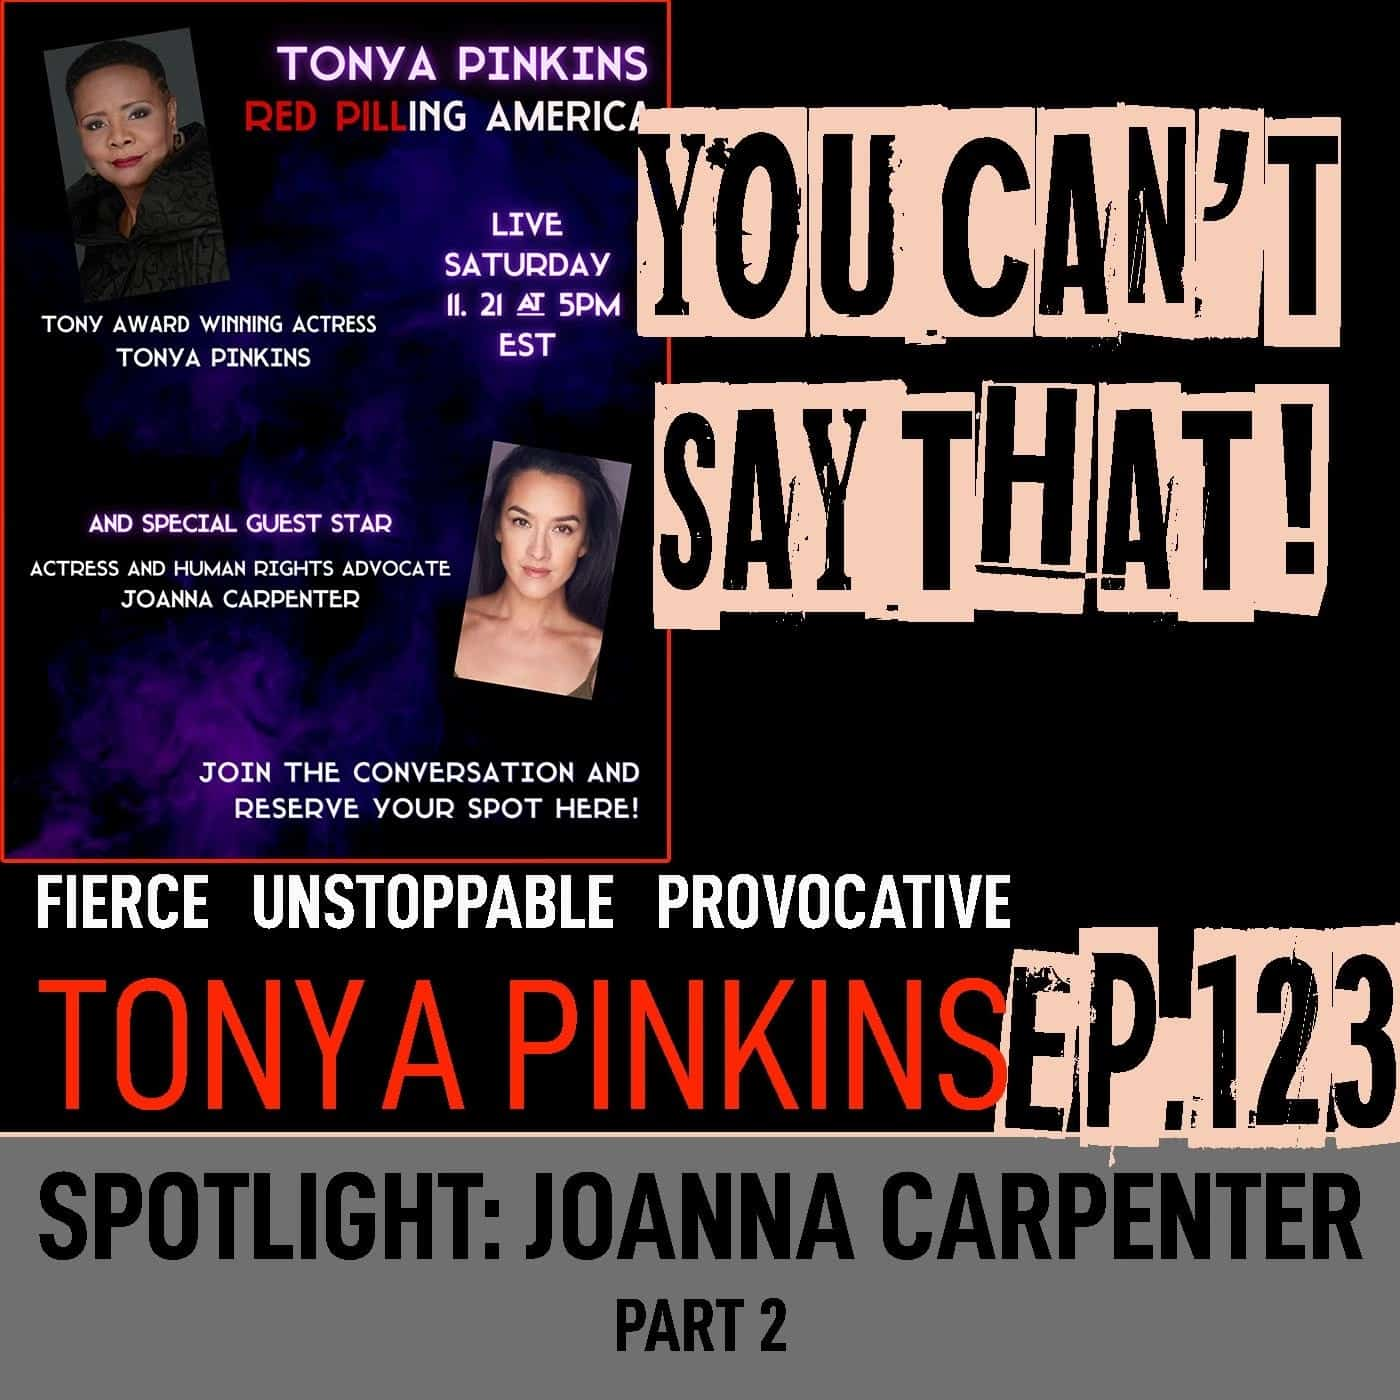 Ep123 - SPOTLIGHT: Red Pilling America with with Joanna Carpenter (Part 2)